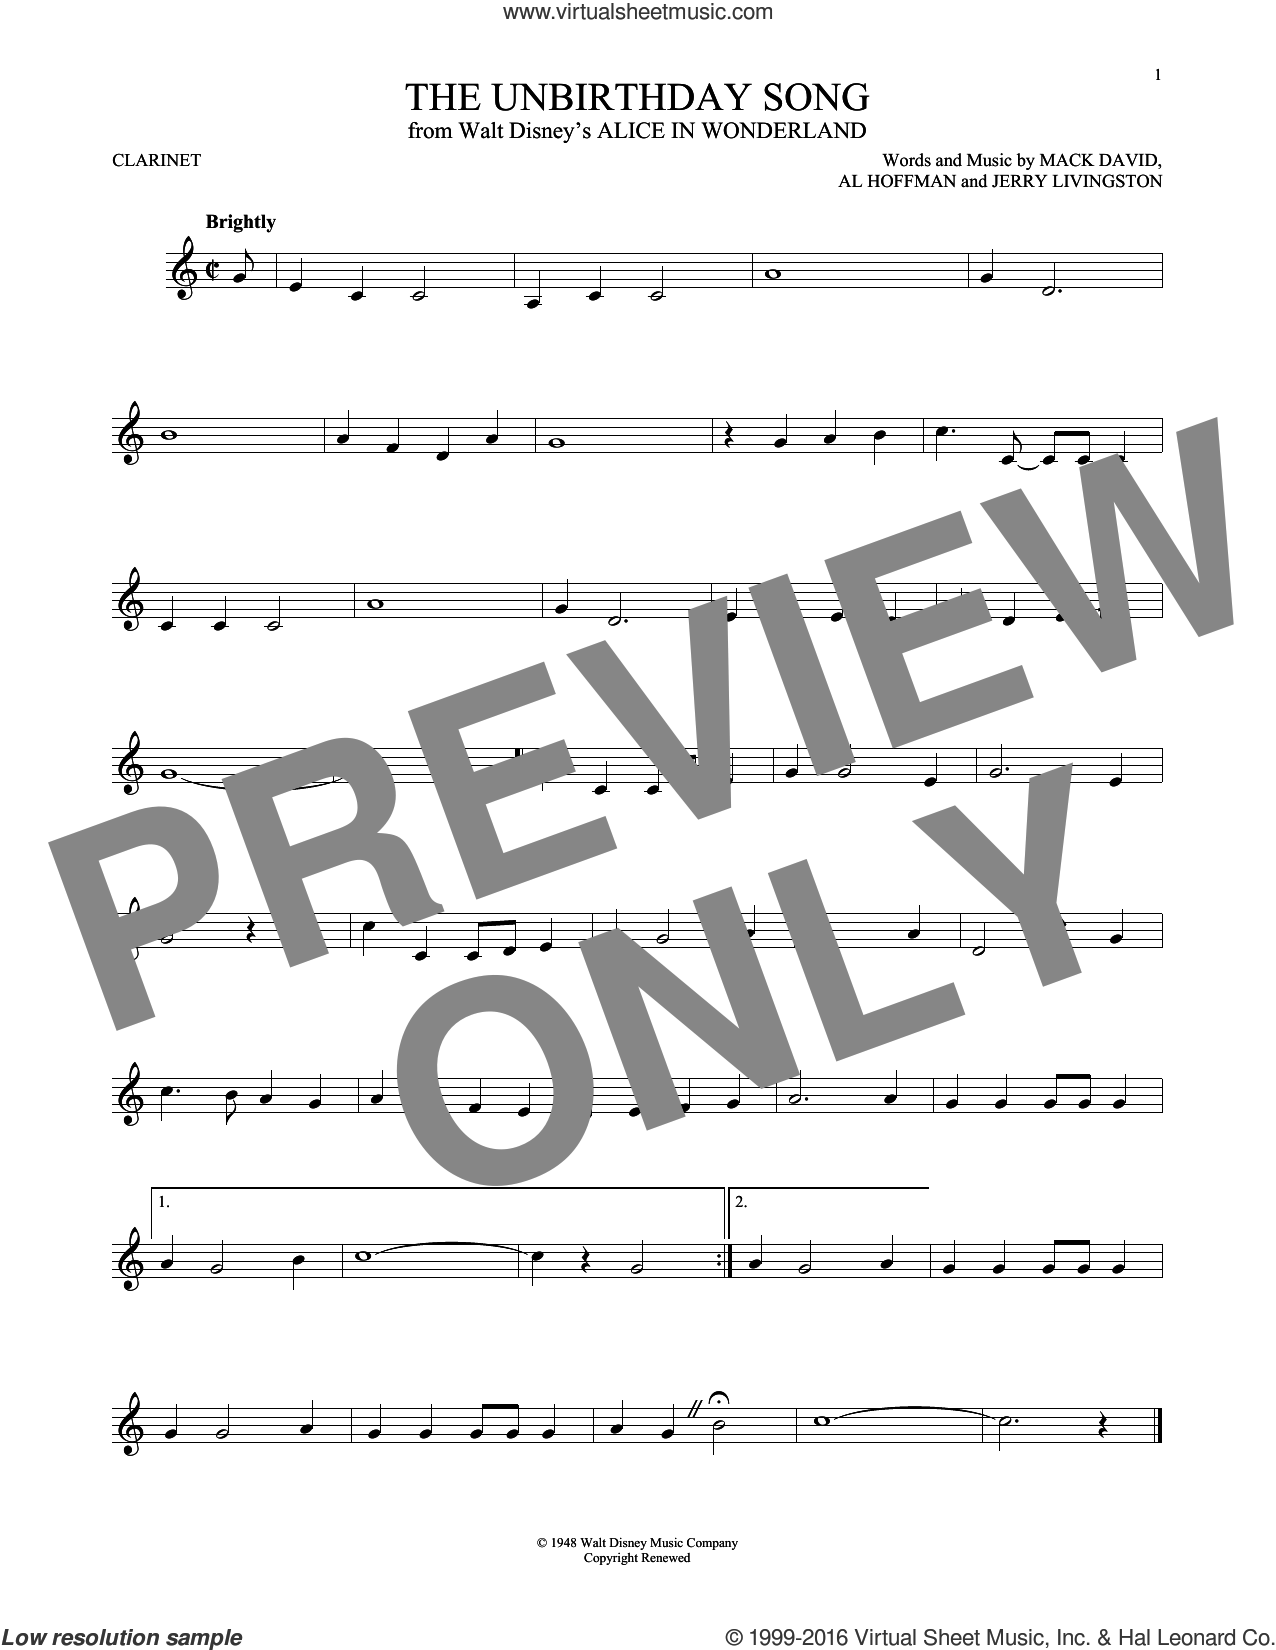 The Unbirthday Song sheet music for clarinet solo by Al Hoffman, Jerry Livingston, Mack David and Mack David, Al Hoffman and Jerry Livingston, intermediate skill level